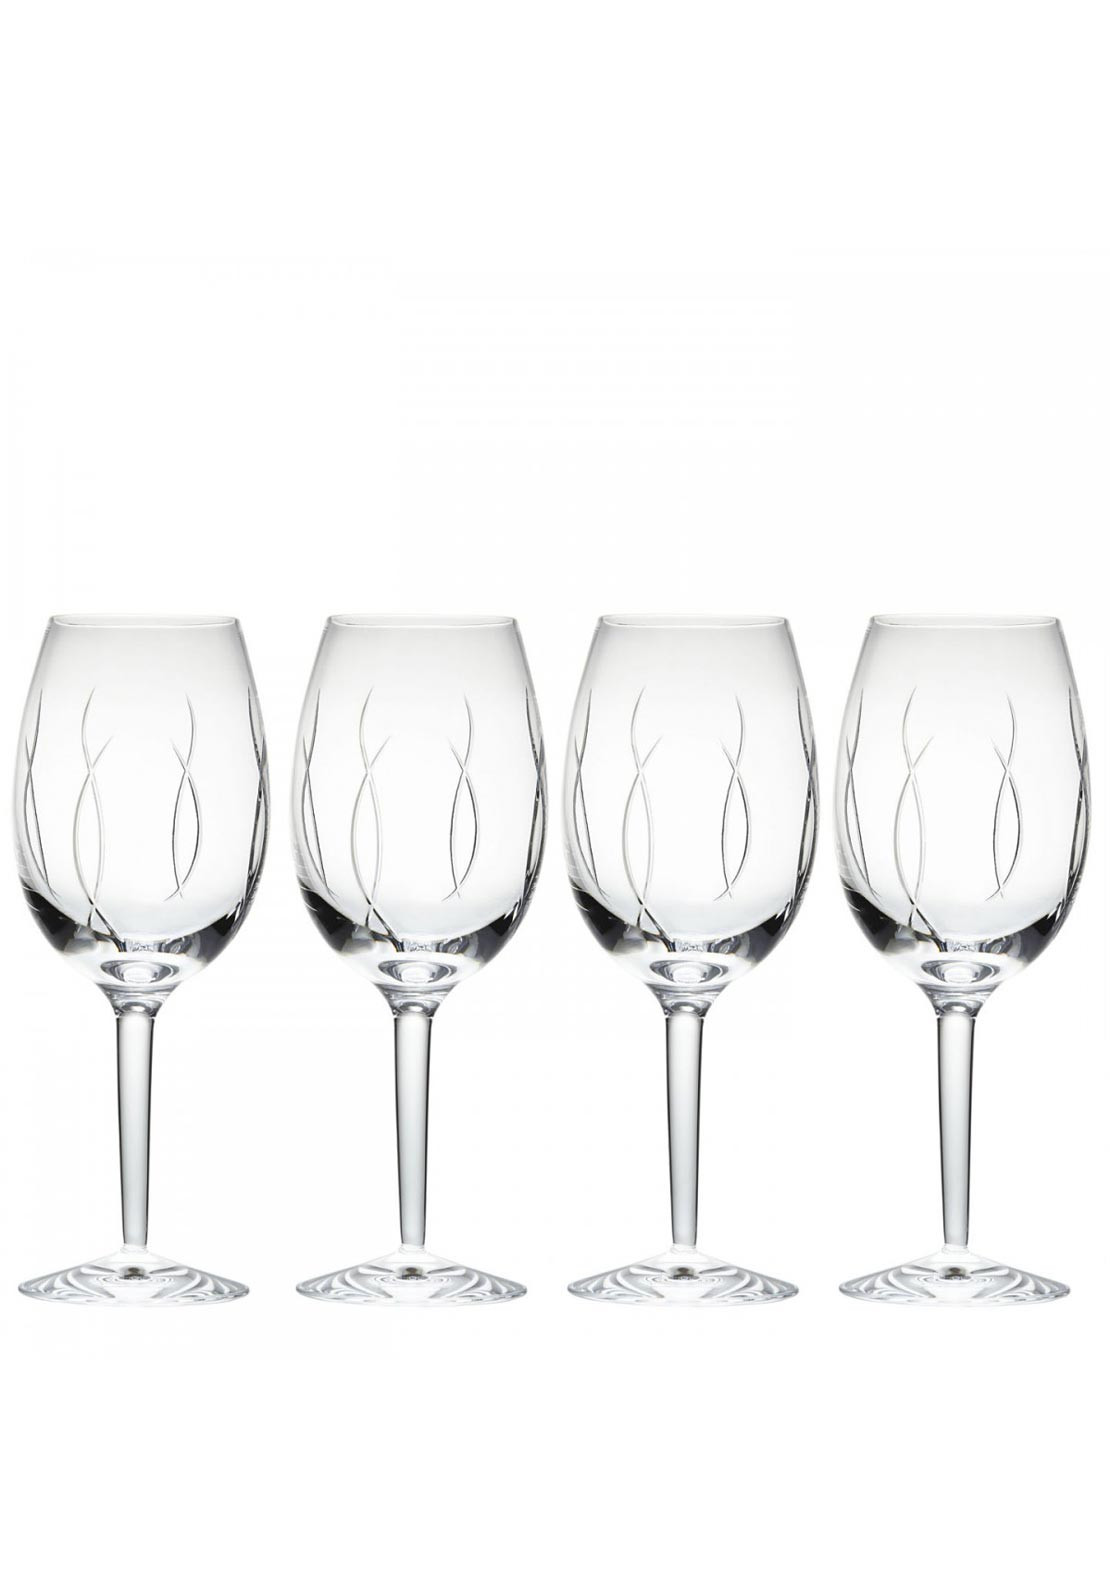 John Rocha at Waterford Weft Goblet Wine Glasses, Set of 4